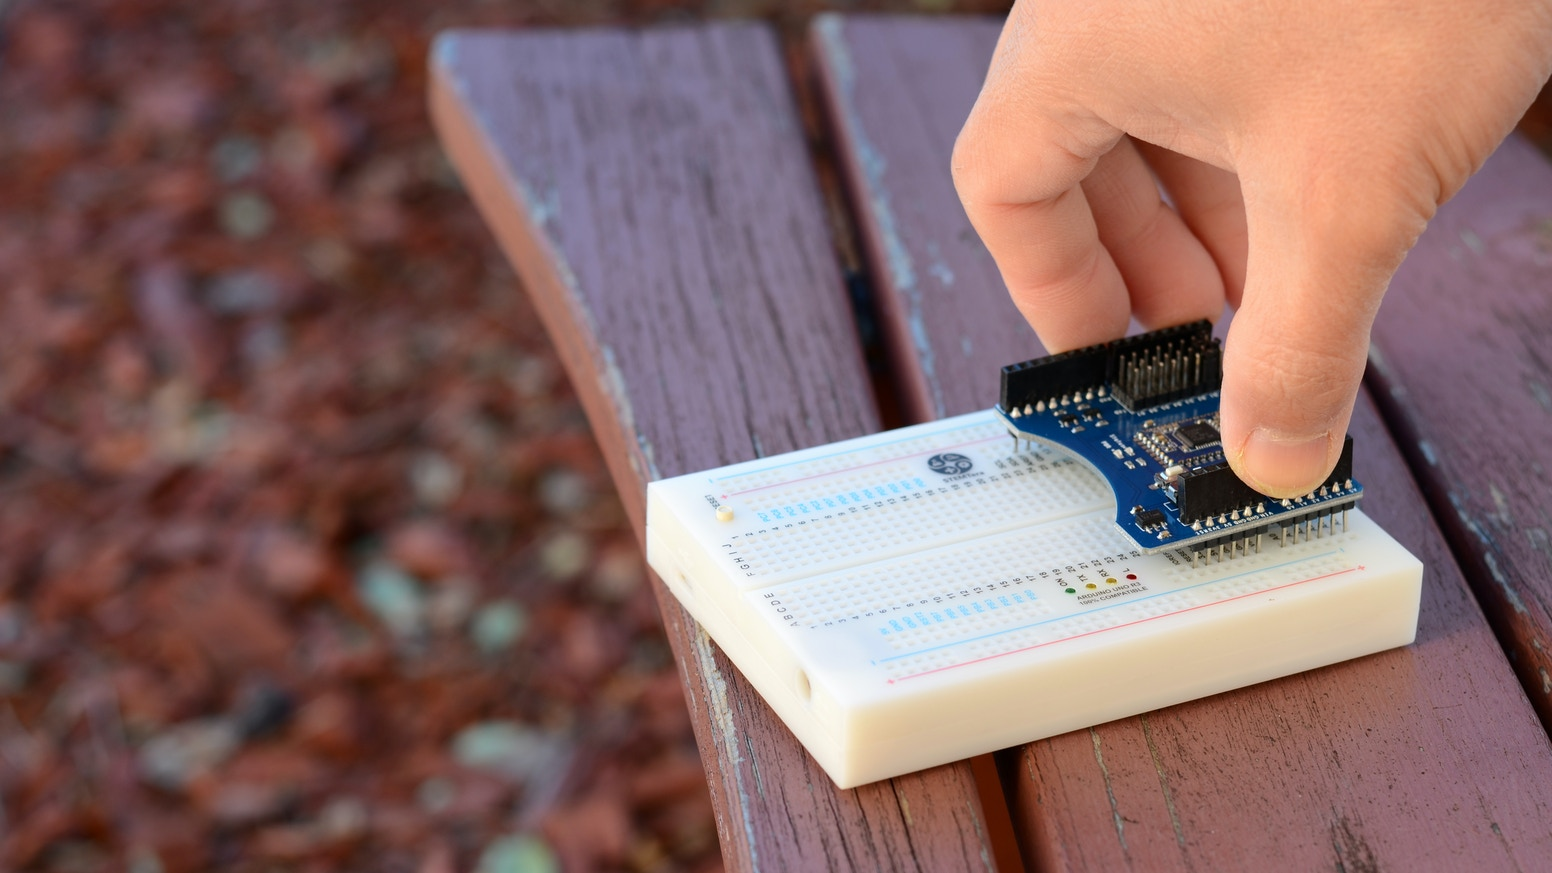 The world's first Arduino compatible built-in breadboard with Arduino shields, LEGO® bricks and native USB support.